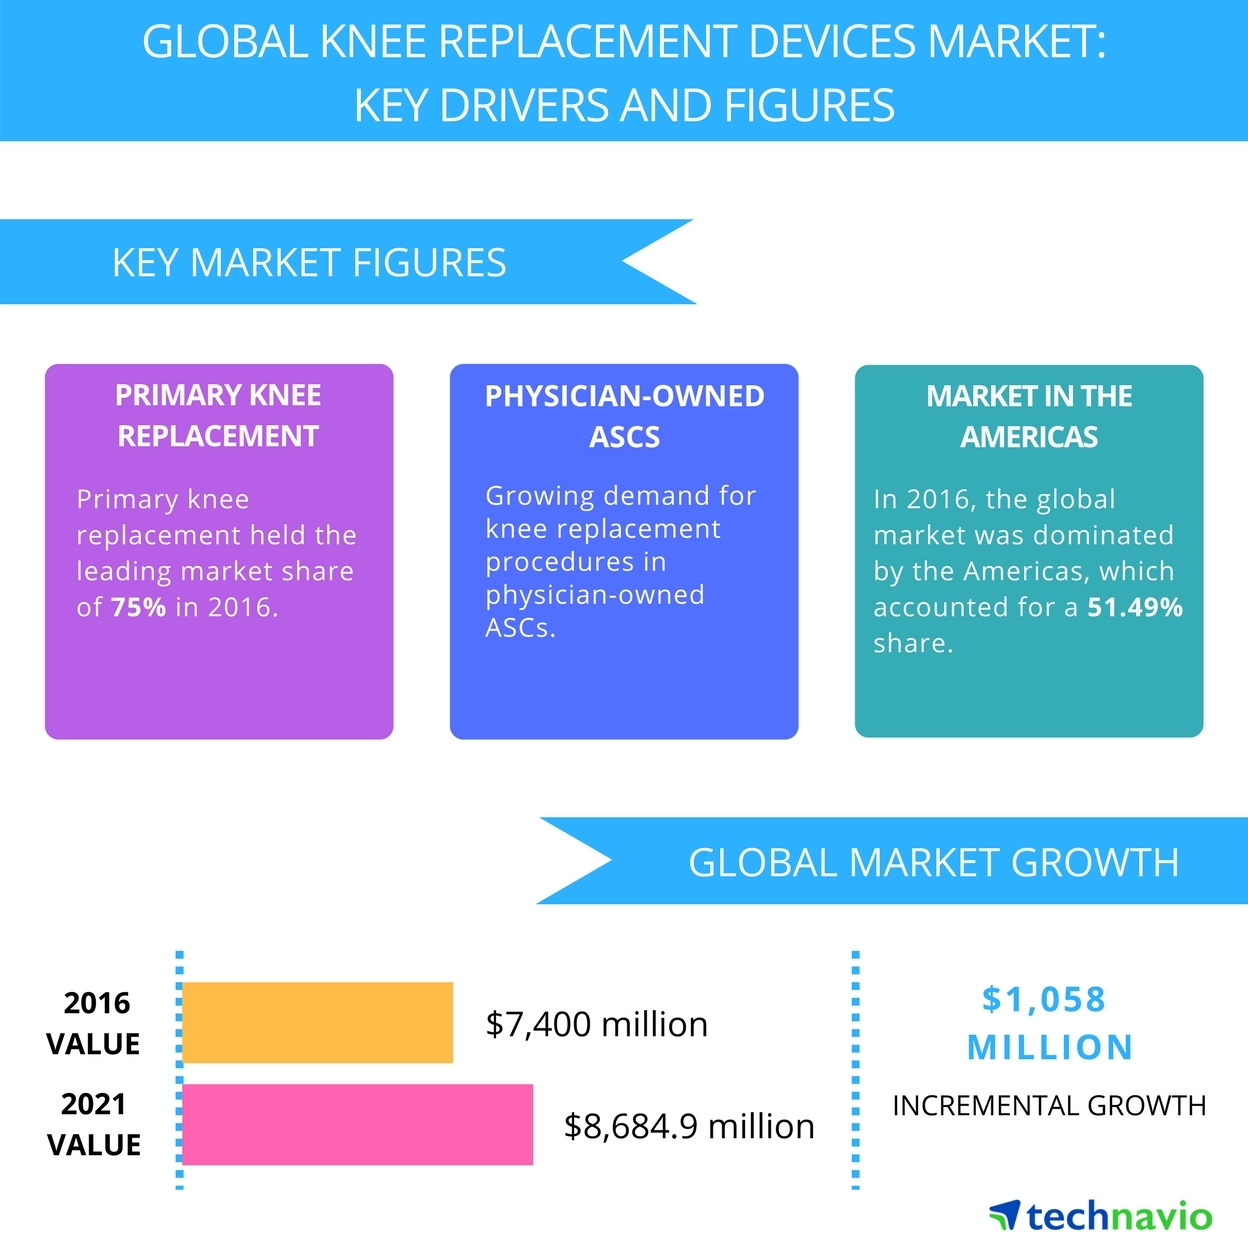 Best Knee Replacement Devices 2021 Top 3 Emerging Trends Impacting the Global Knee Replacement